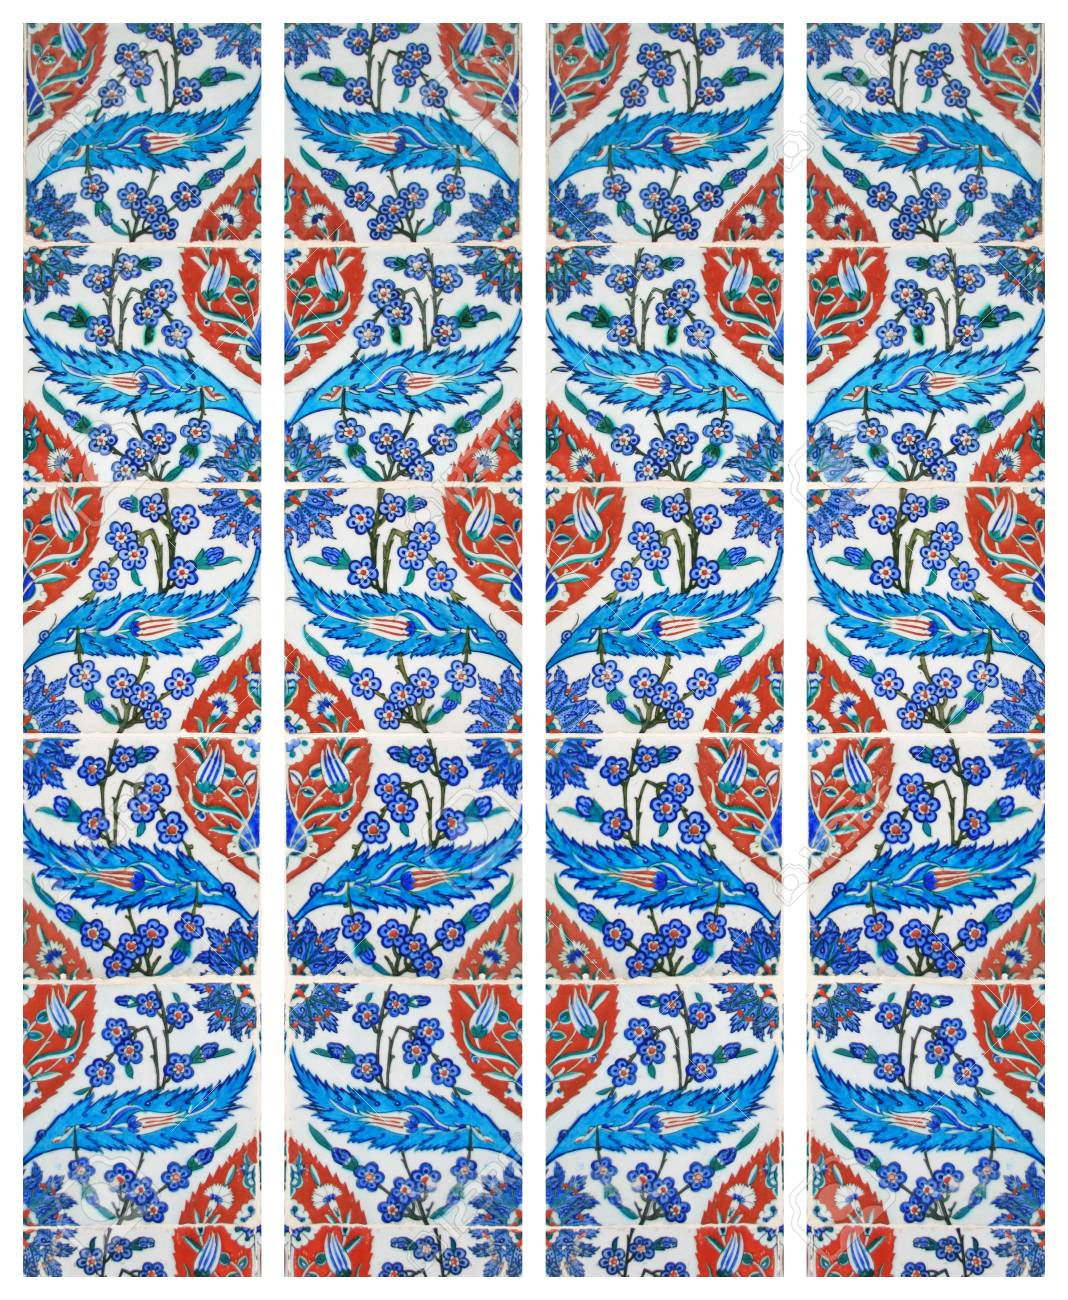 Old ,OriginalTurkish Wall Tiles Stock Photo, Picture And Royalty ...